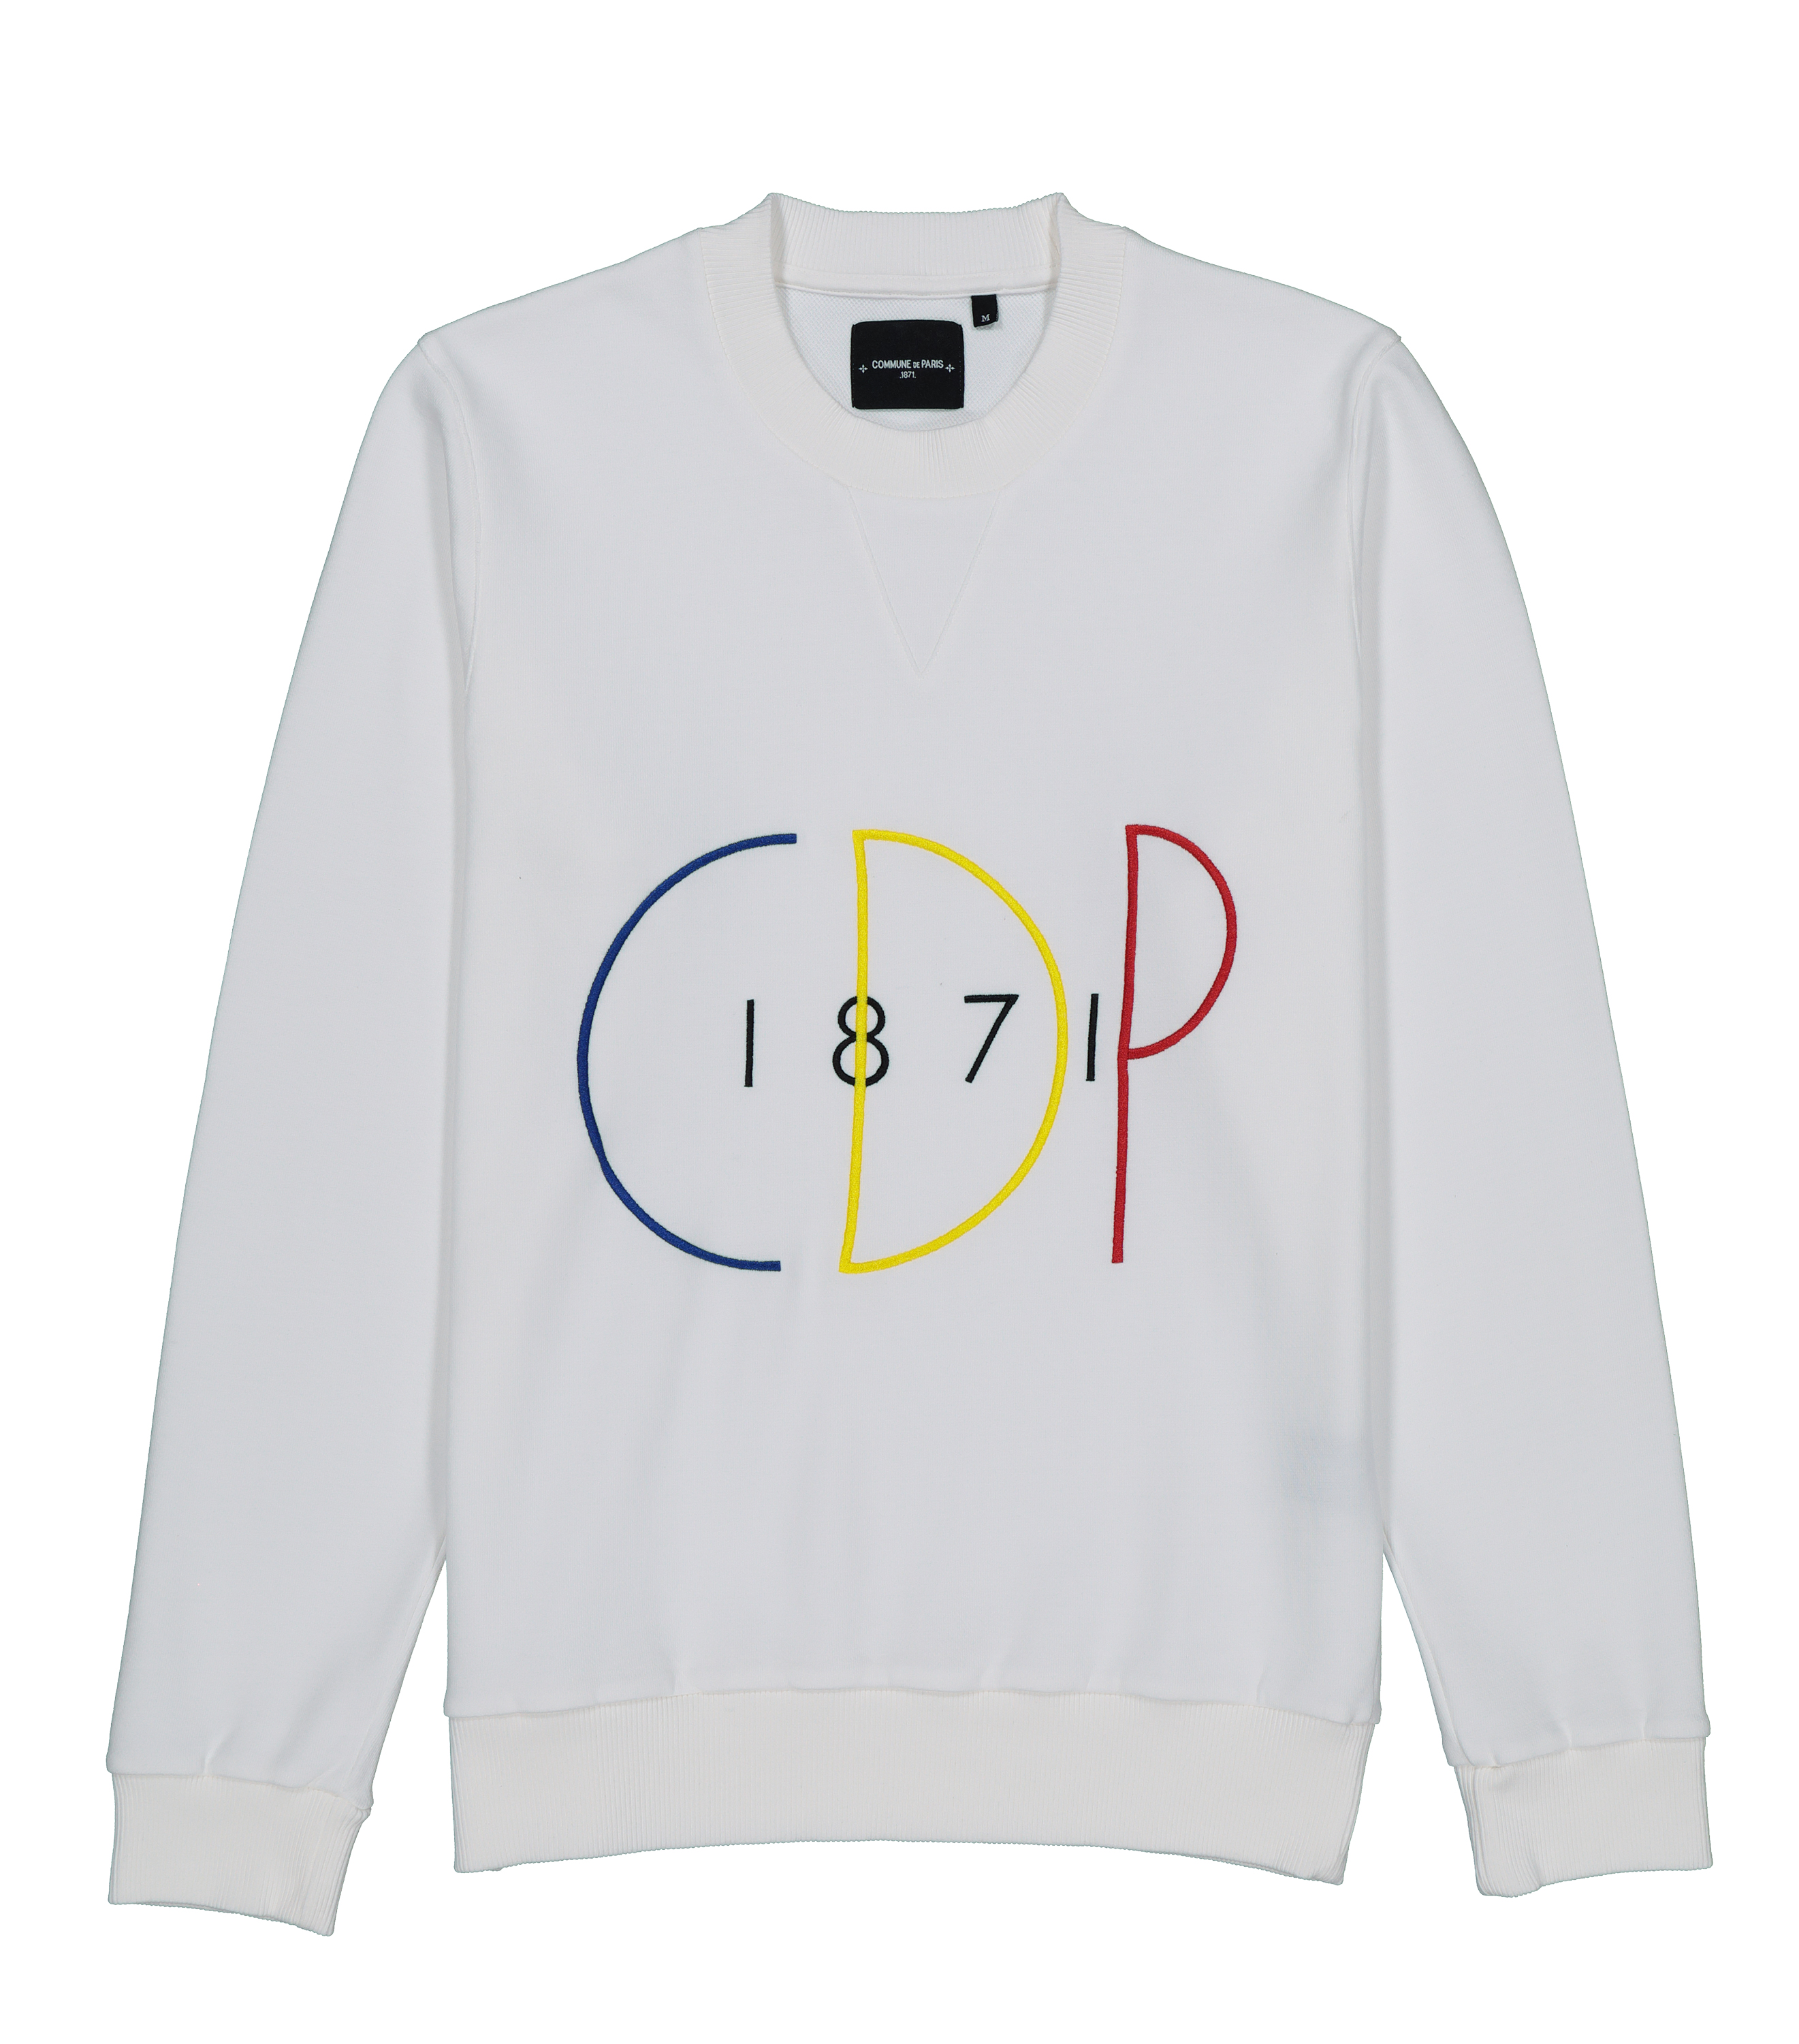 SWEAT CDP 1871 - Ivoire